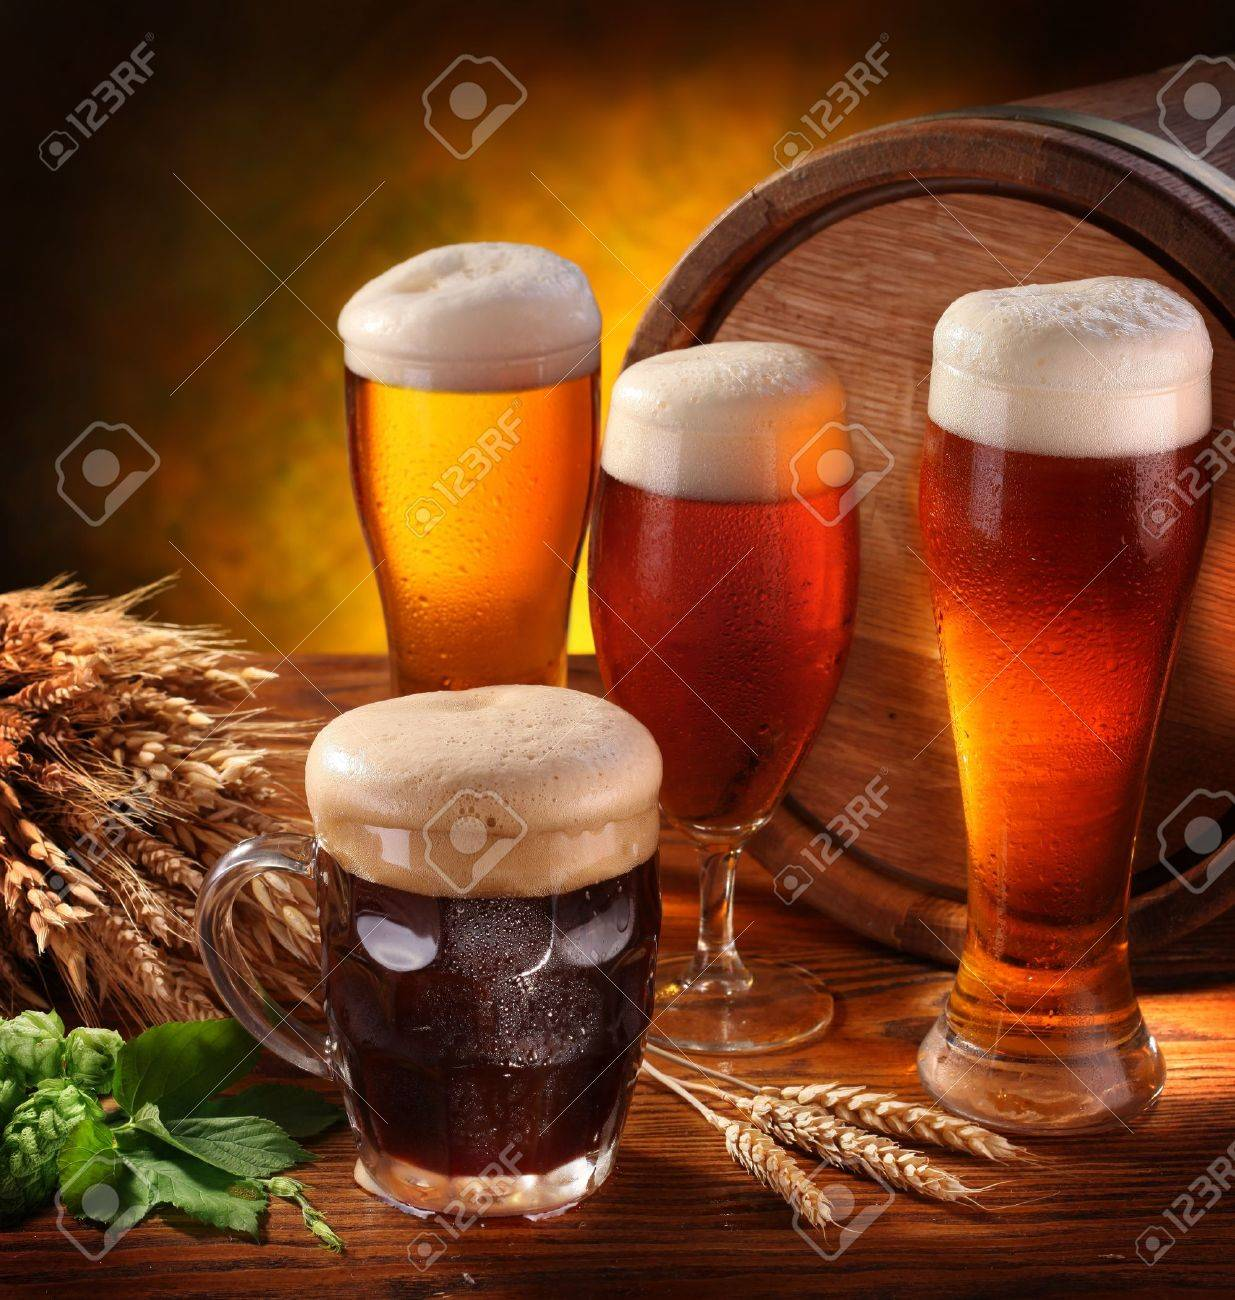 Still Life with a keg of beer and draft beer by the glass. Stock Photo - 10613199